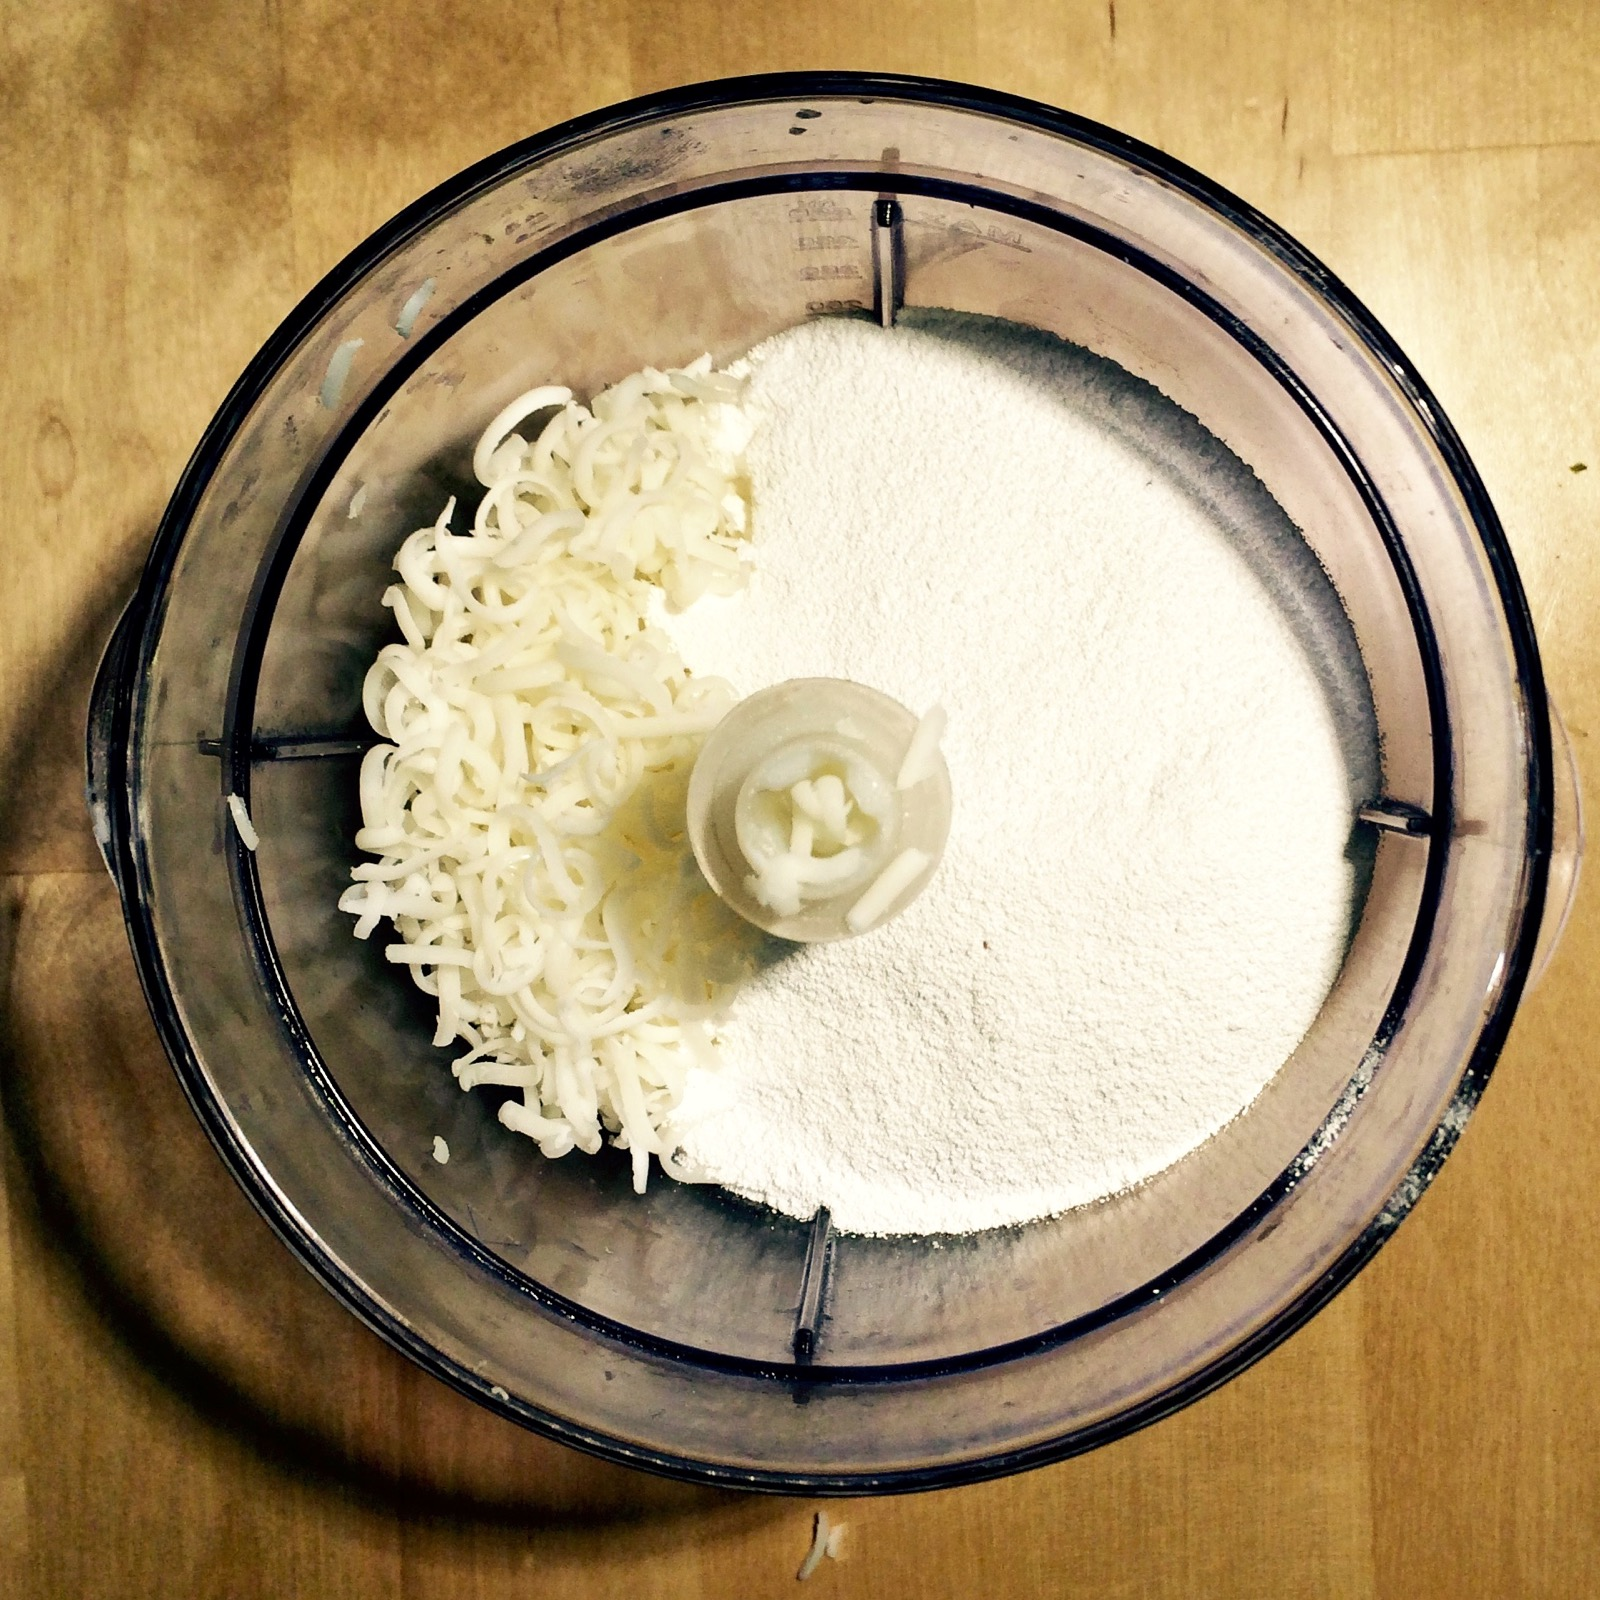 Our Permaculture Life How To Make Natural Laundry Powder